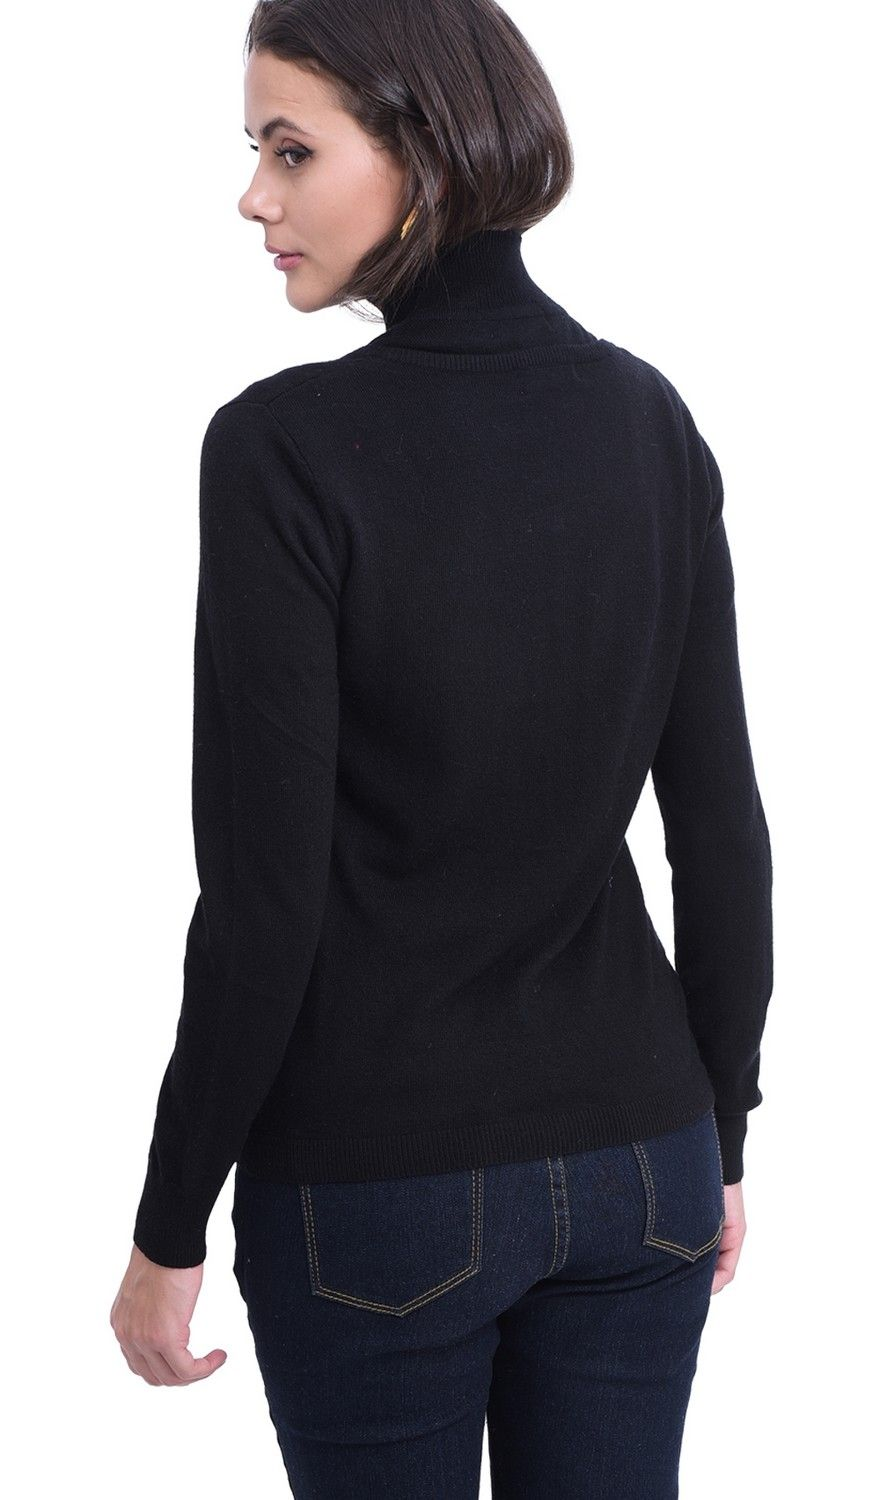 William De Faye Round Neck Long Sleeve Cardigan in Black